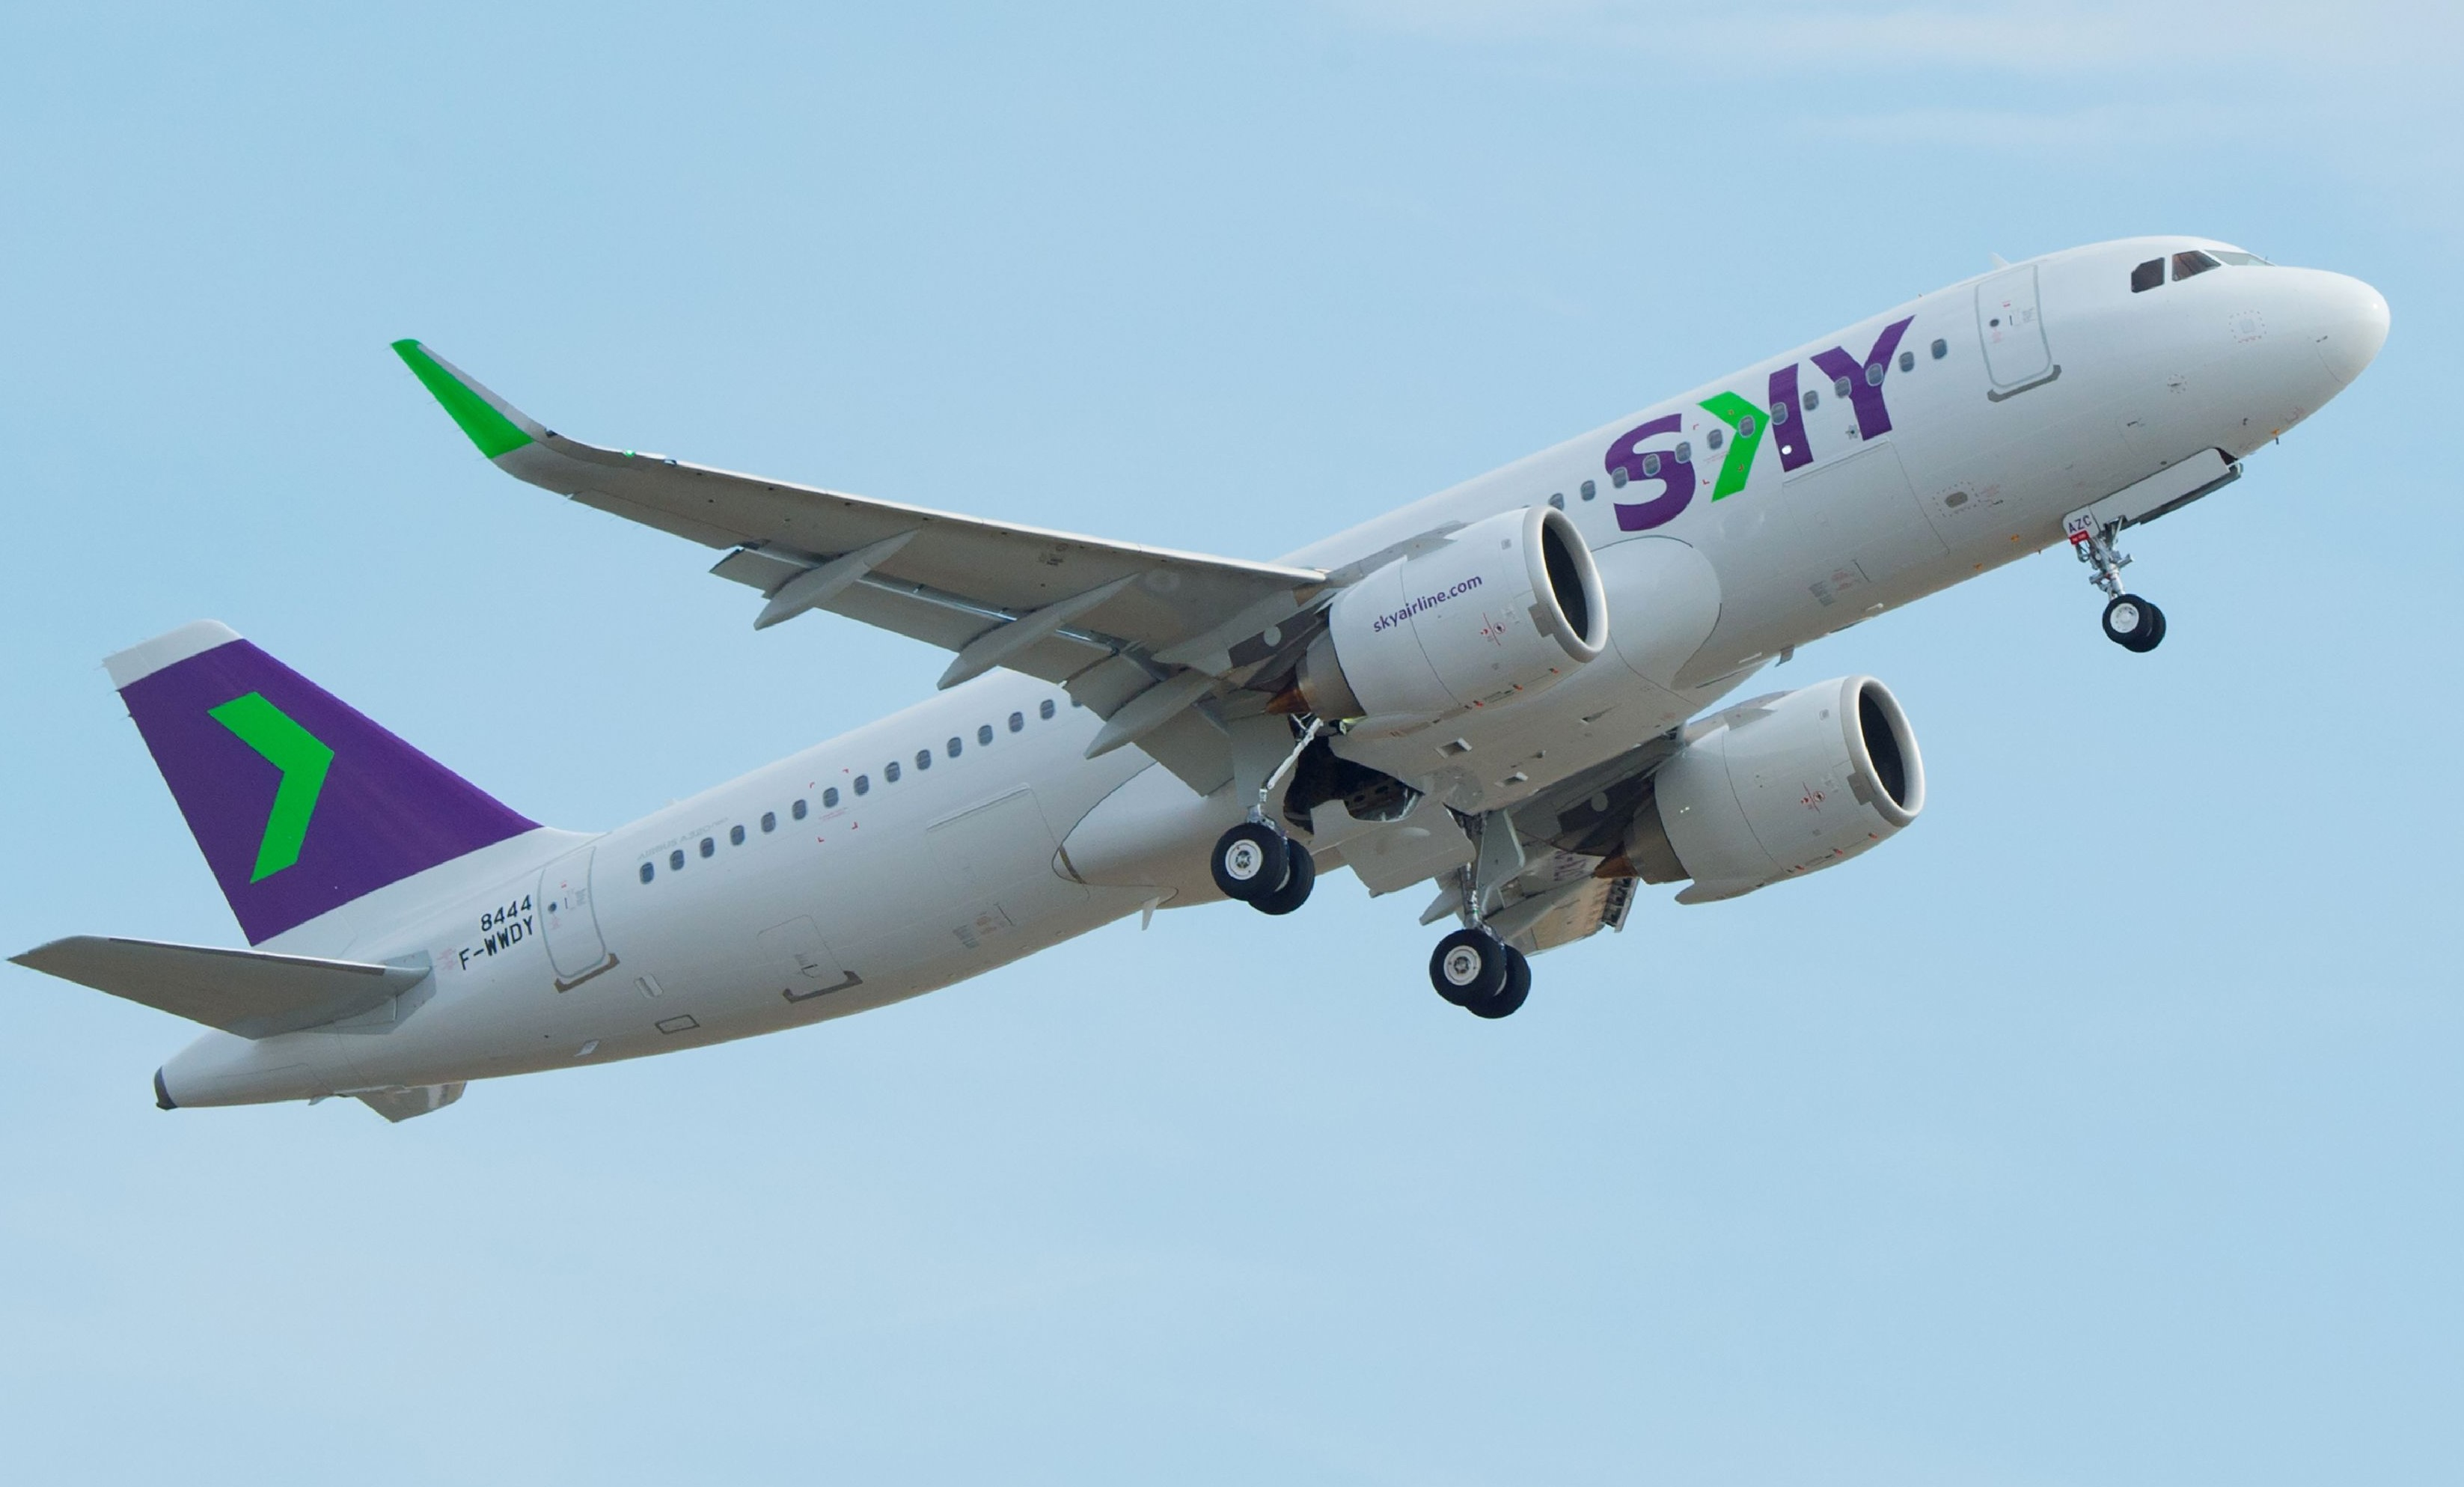 Sky Airline A320neo